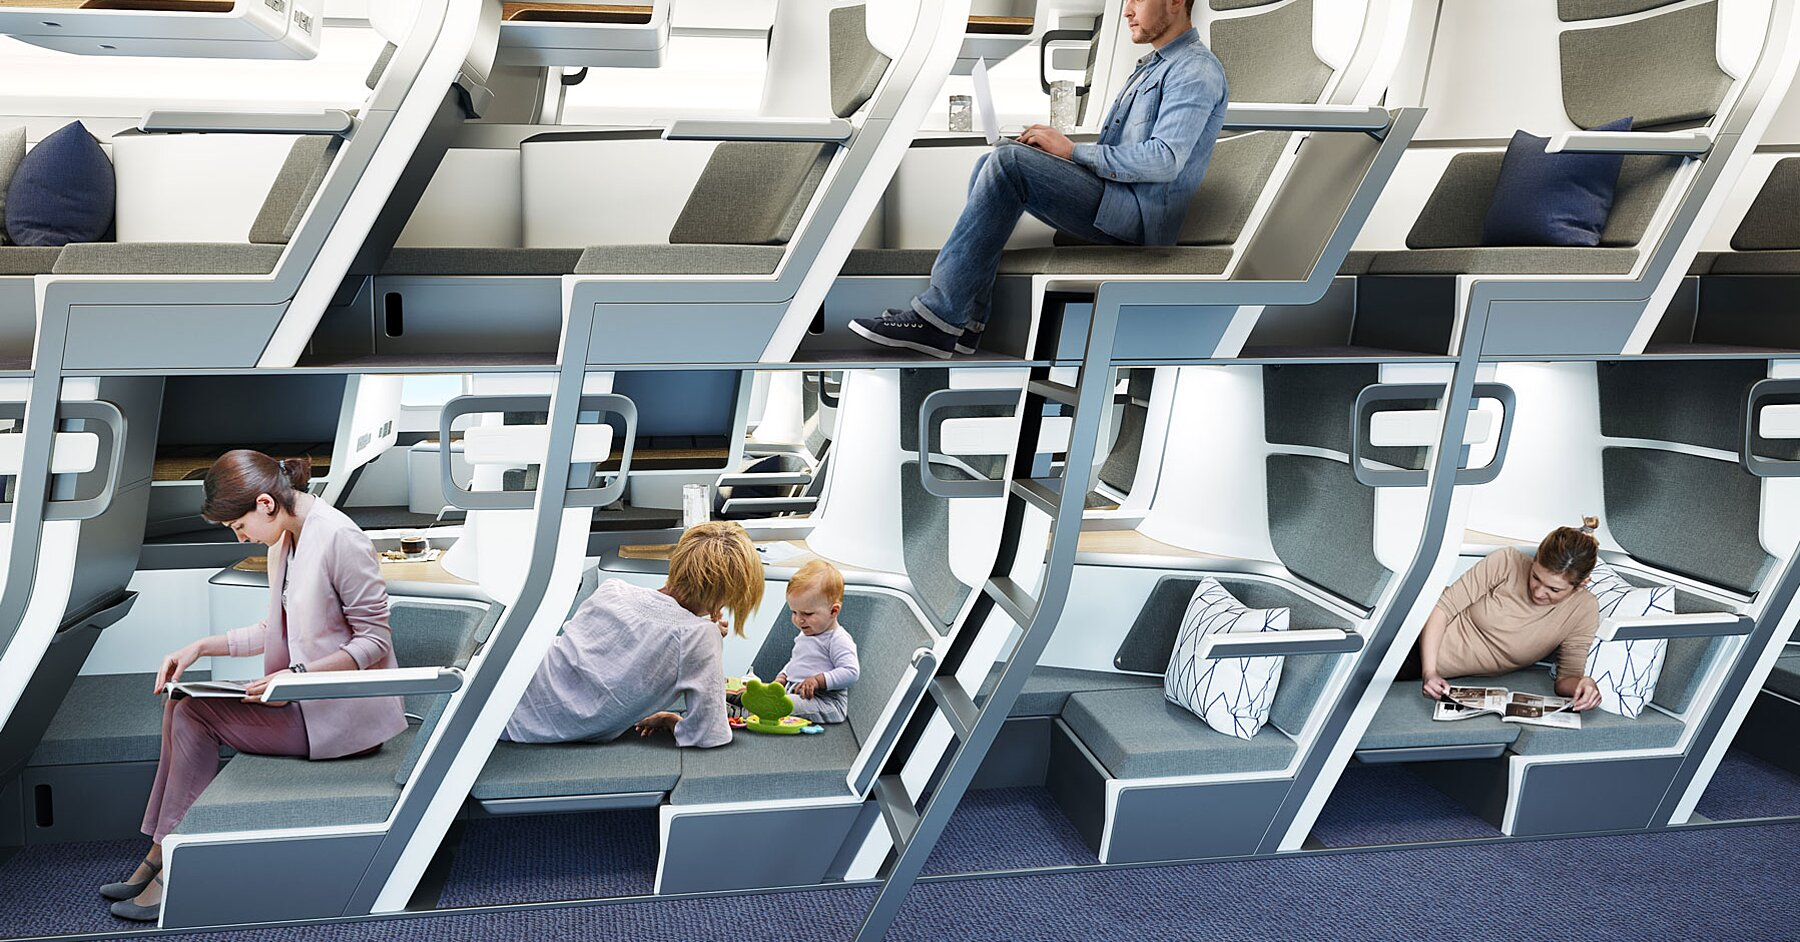 This Double-decker Airplane Seat Could One Day Allow Everyone to Have Lie-flat Seats — Even in Economy